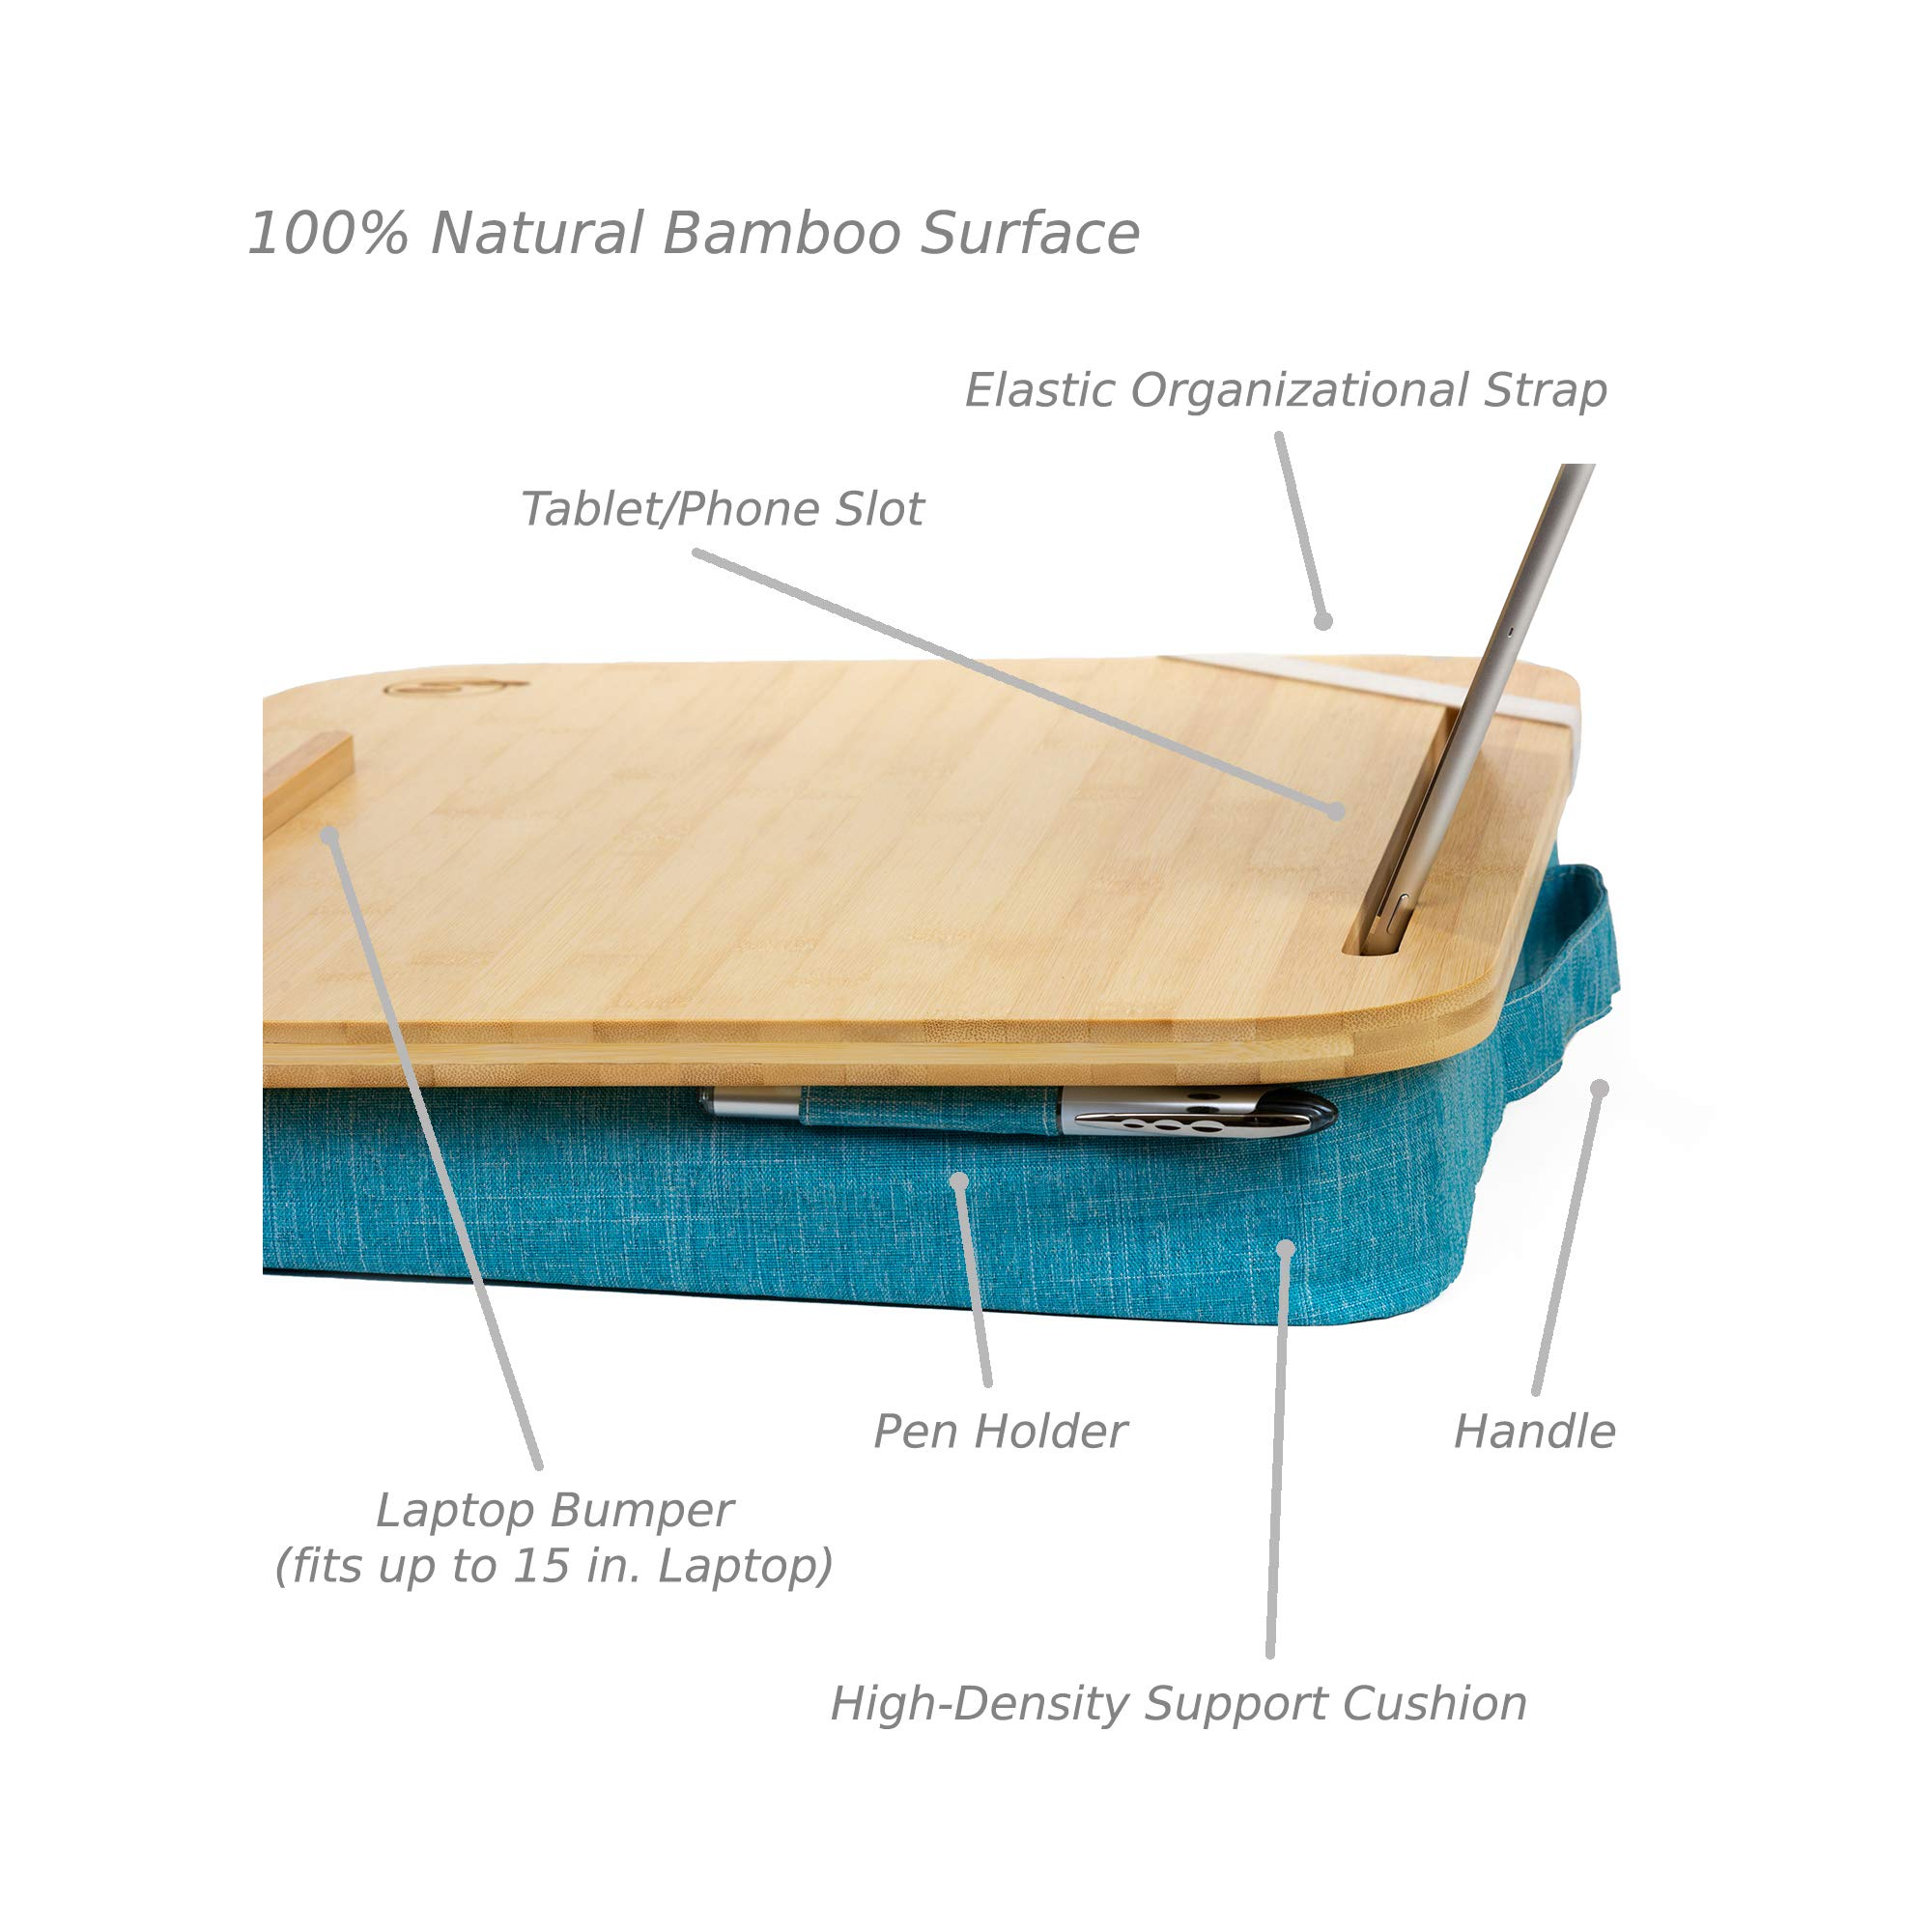 Portable Lap Desk by Hultzzzy - with 100% Real Bamboo Surface - Holds 18'' Laptops, Media Slot Fits 15'' Tablets - Premium Quality by Hultzzzy (Image #2)